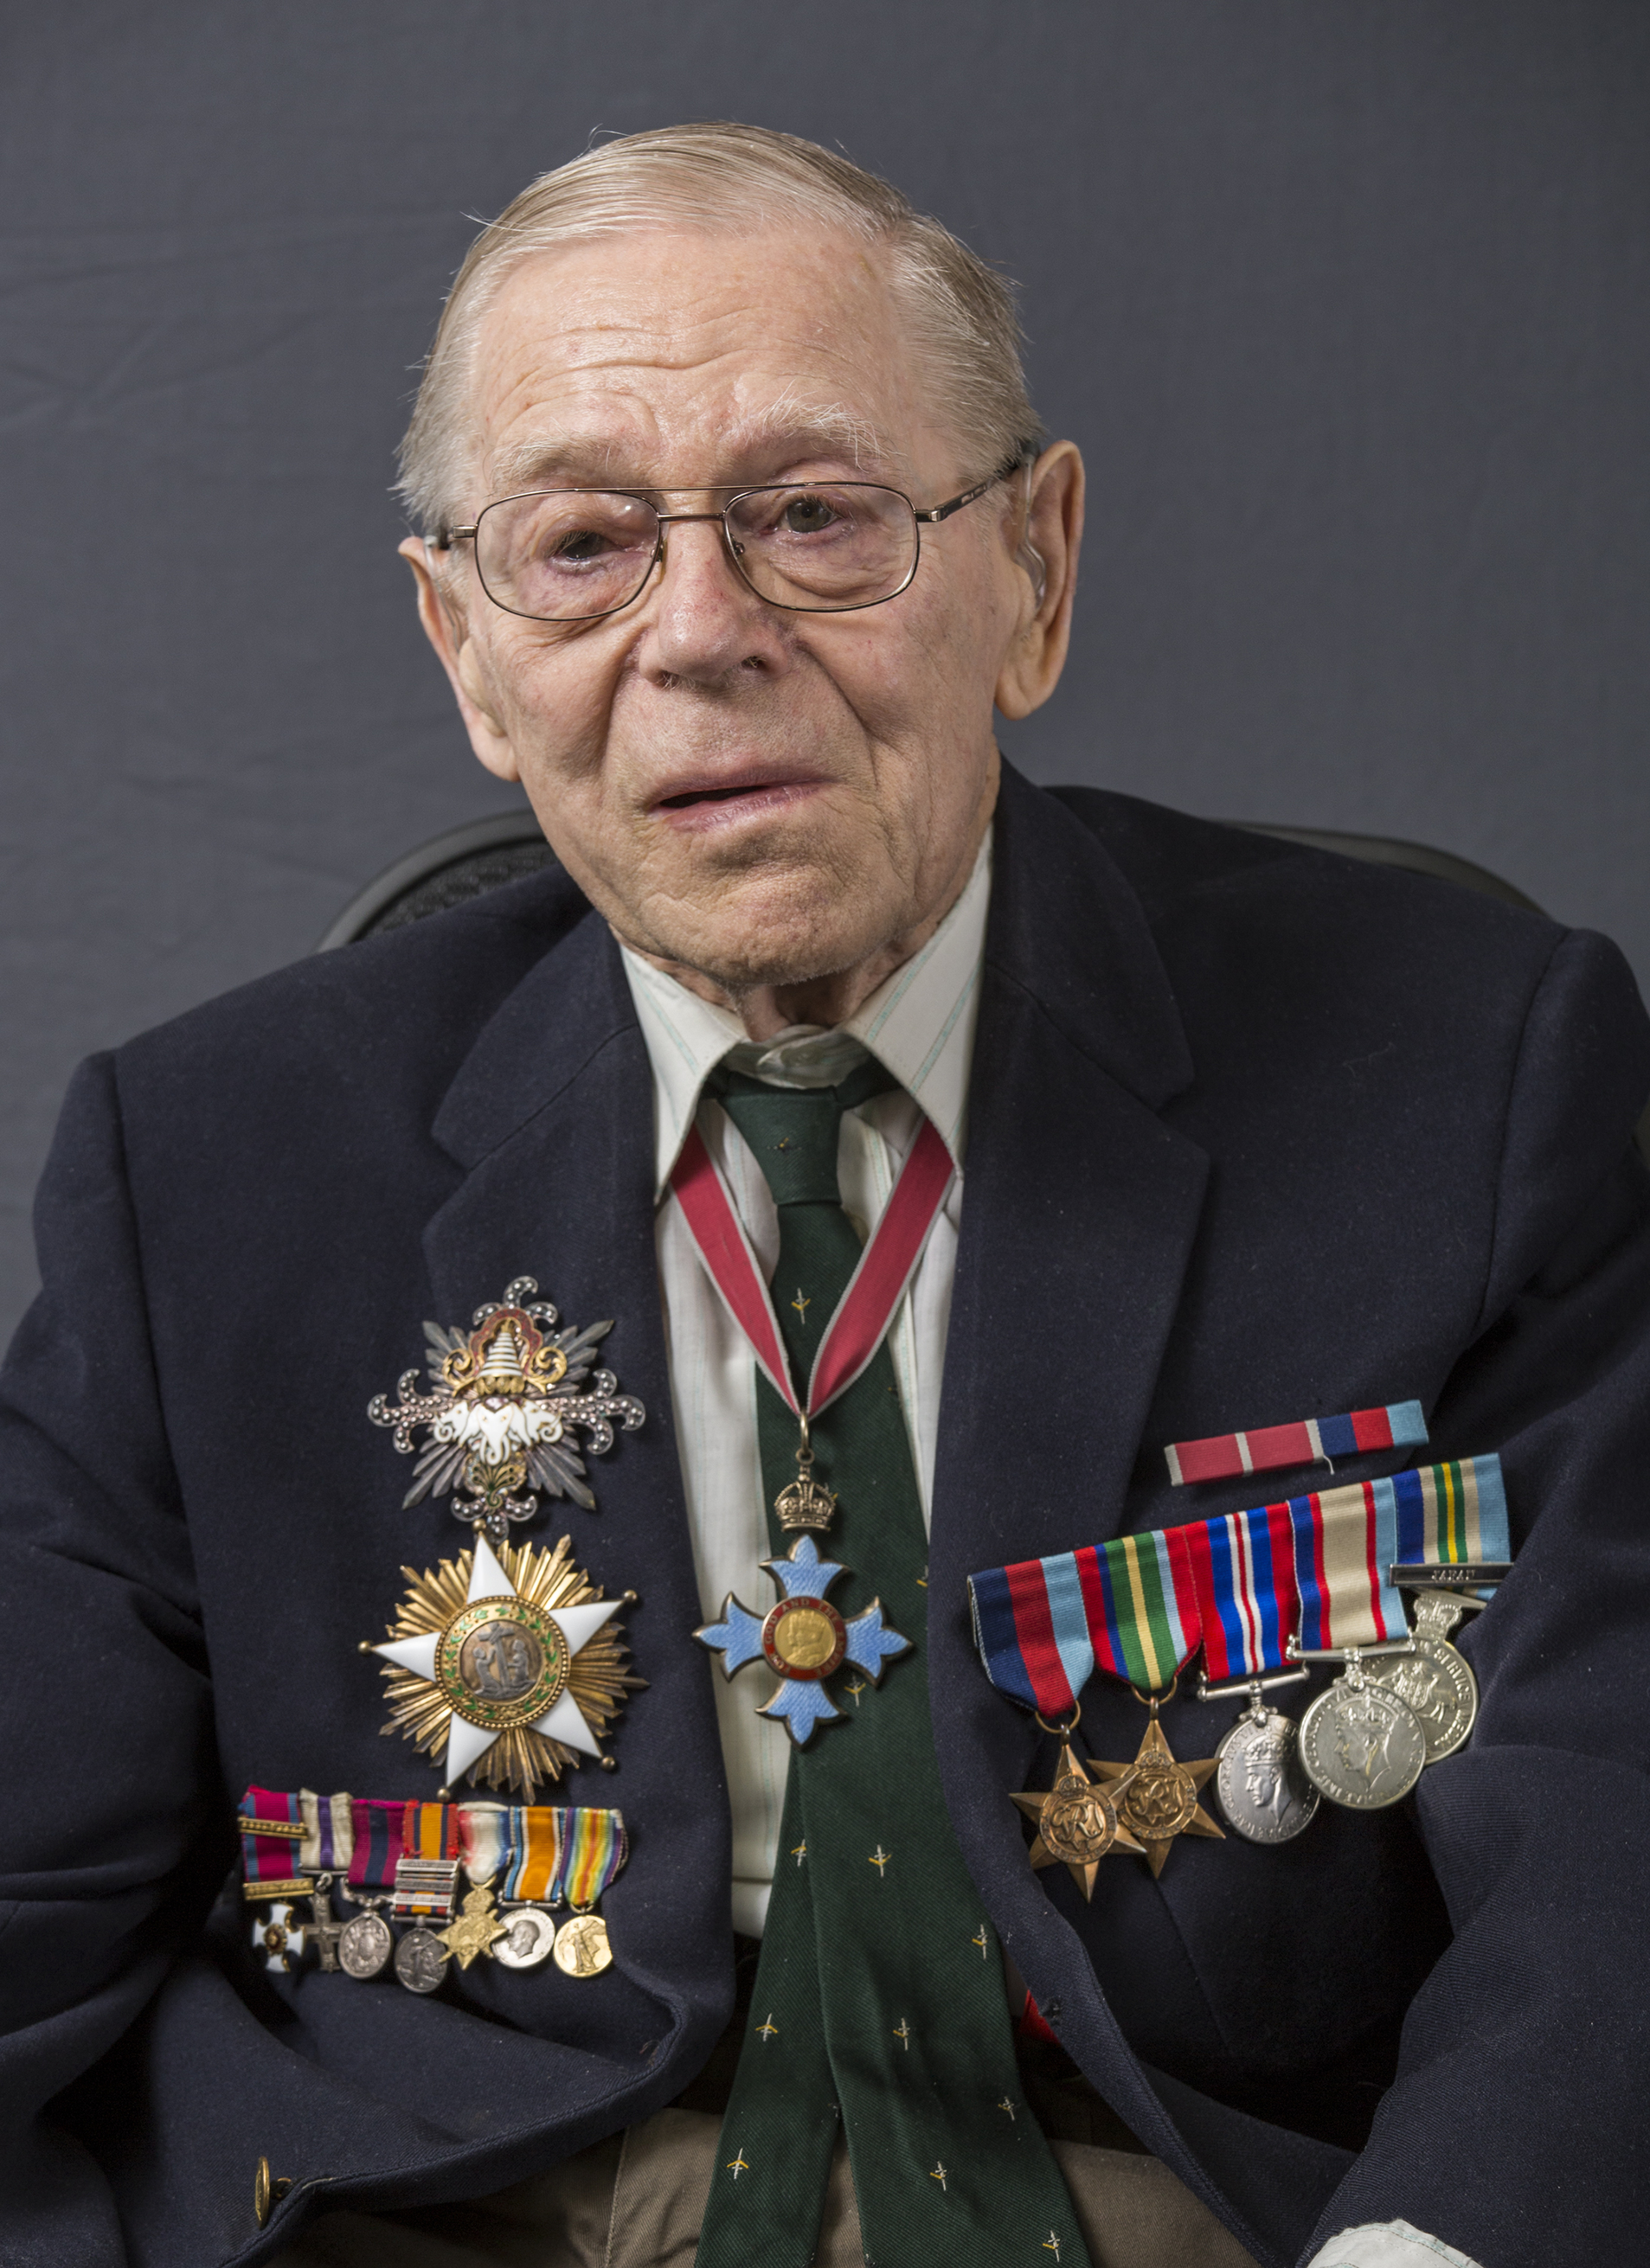 Barrie Dexter wearing awards and medals